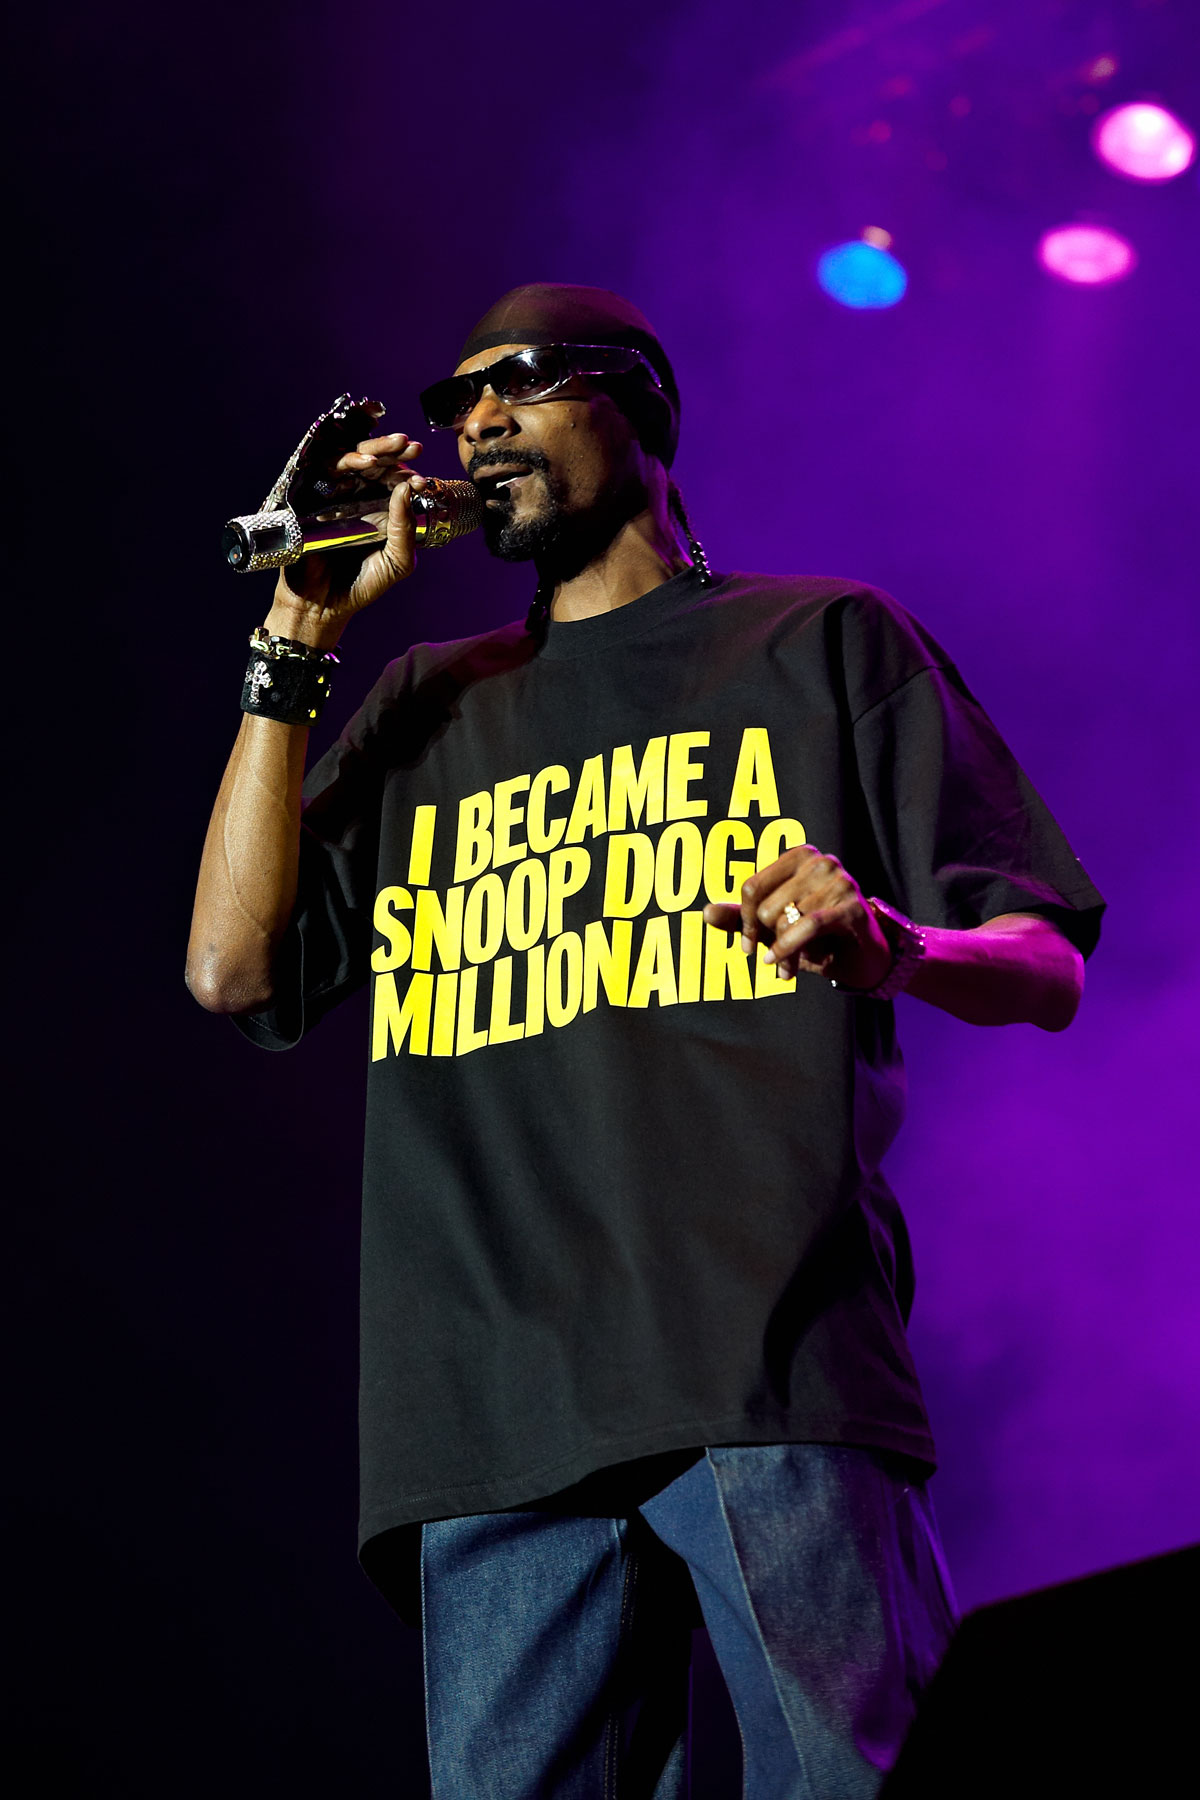 Snoop Dogg is planning on being more than a millionaire